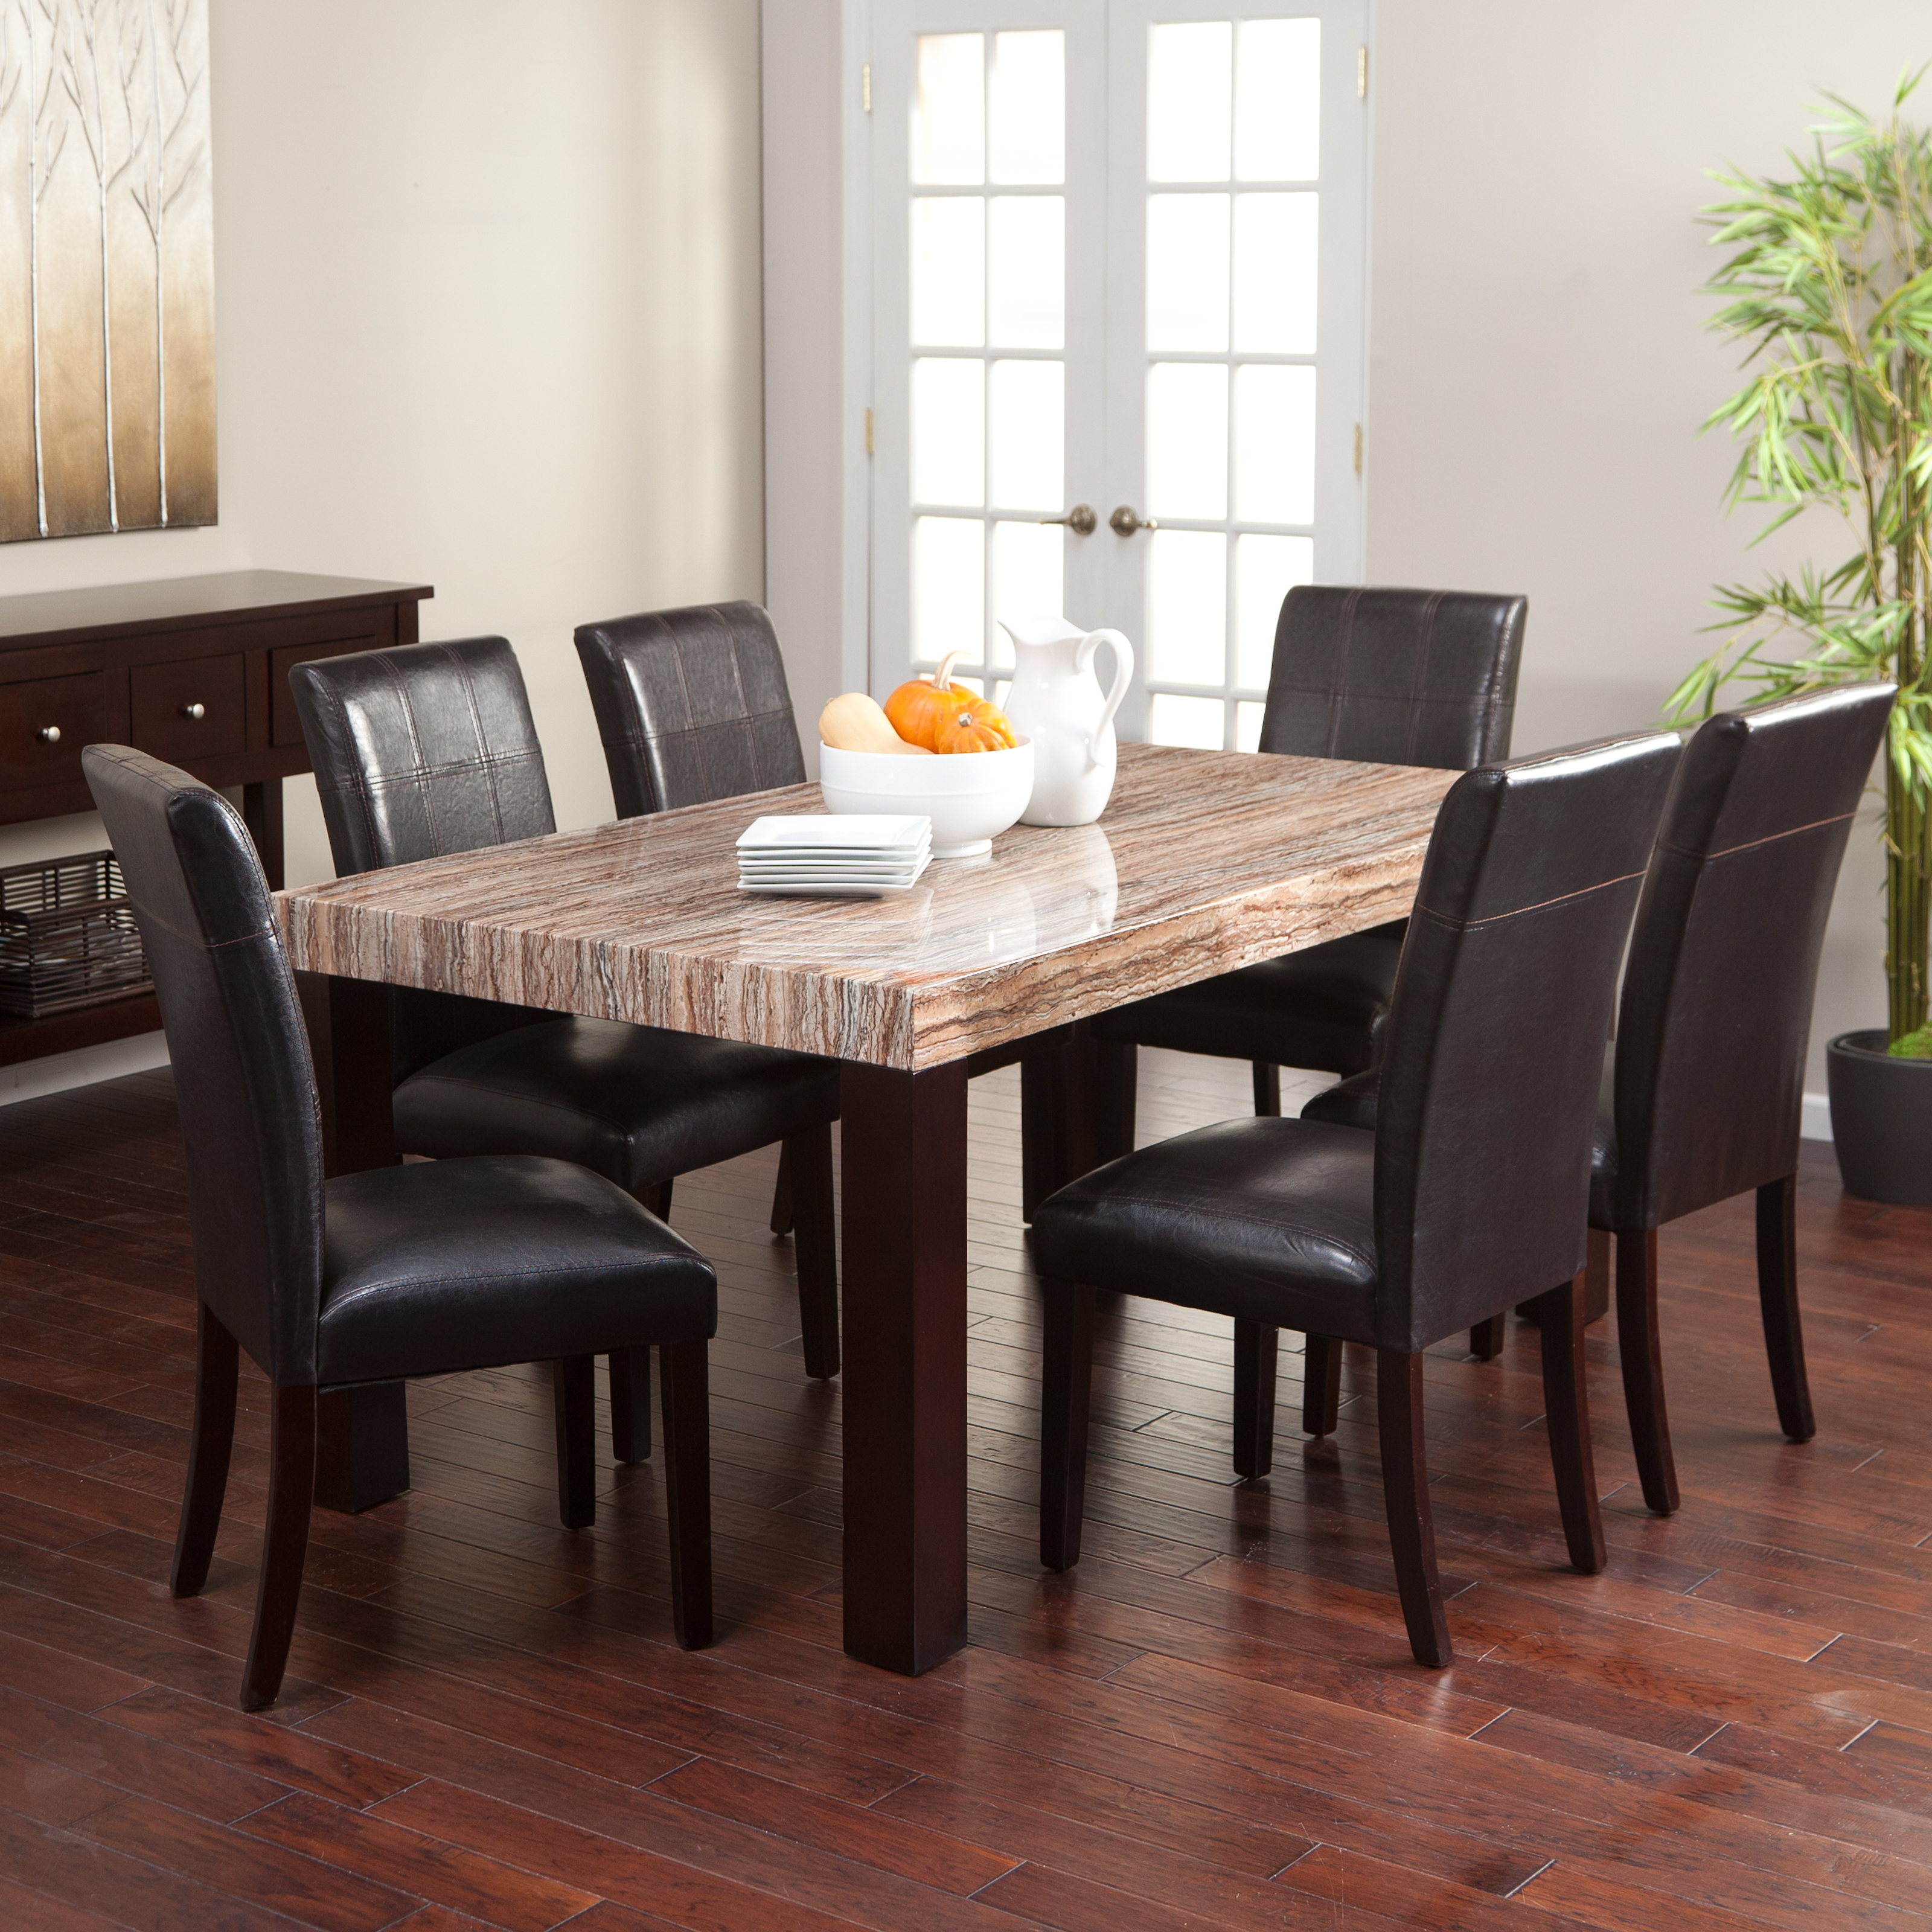 Carmine 7 Piece Dining Table Set | Hayneedle